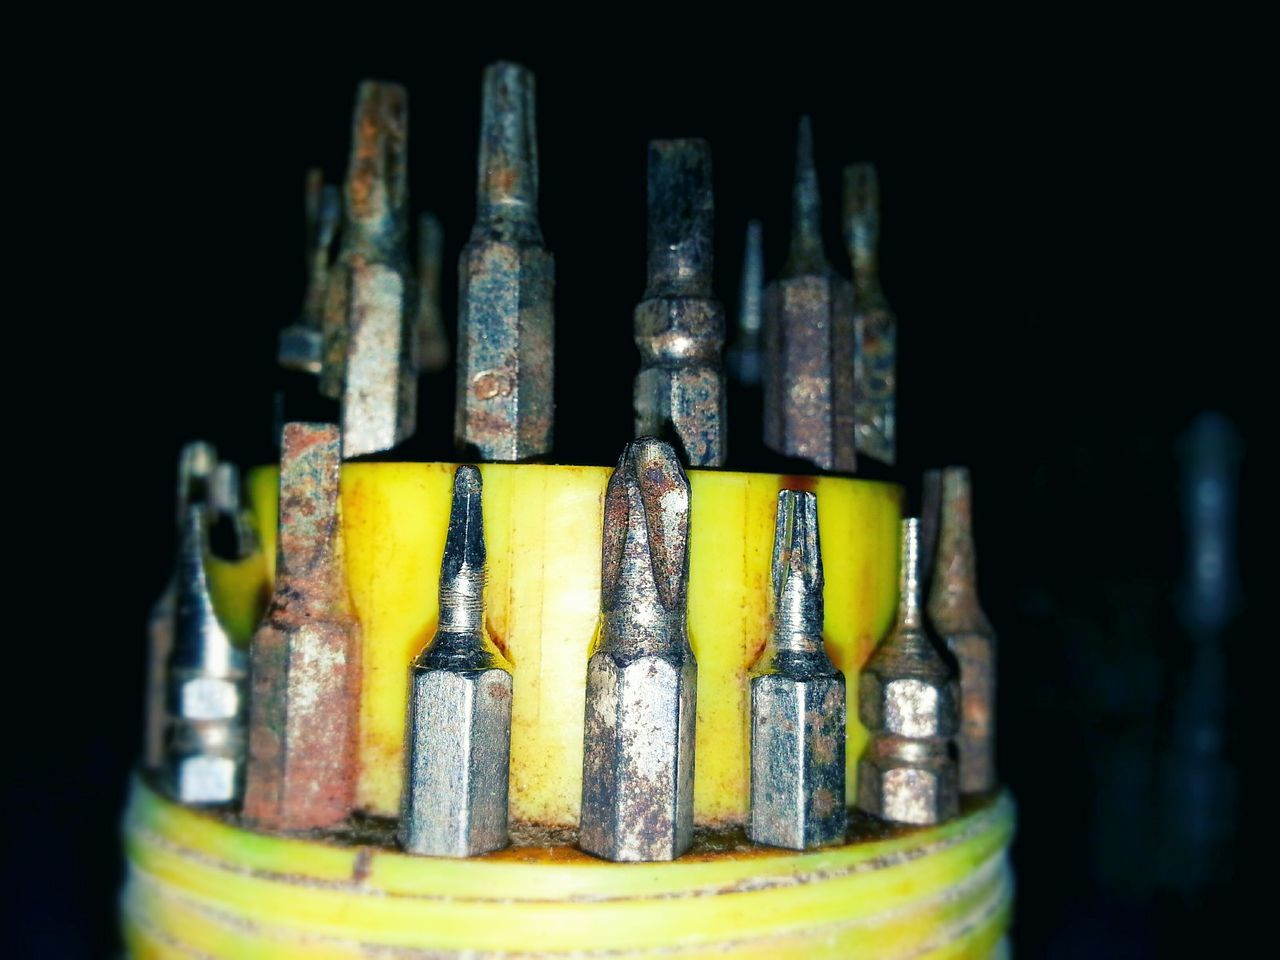 In A Row Indoors  No People Black Background Close-up Filament Screwdrivers Set Of Screwdriver Iron - Metal Container Circle Table EyeEm Best Shots Creative Light And Shadow Rusty Metal Yellow